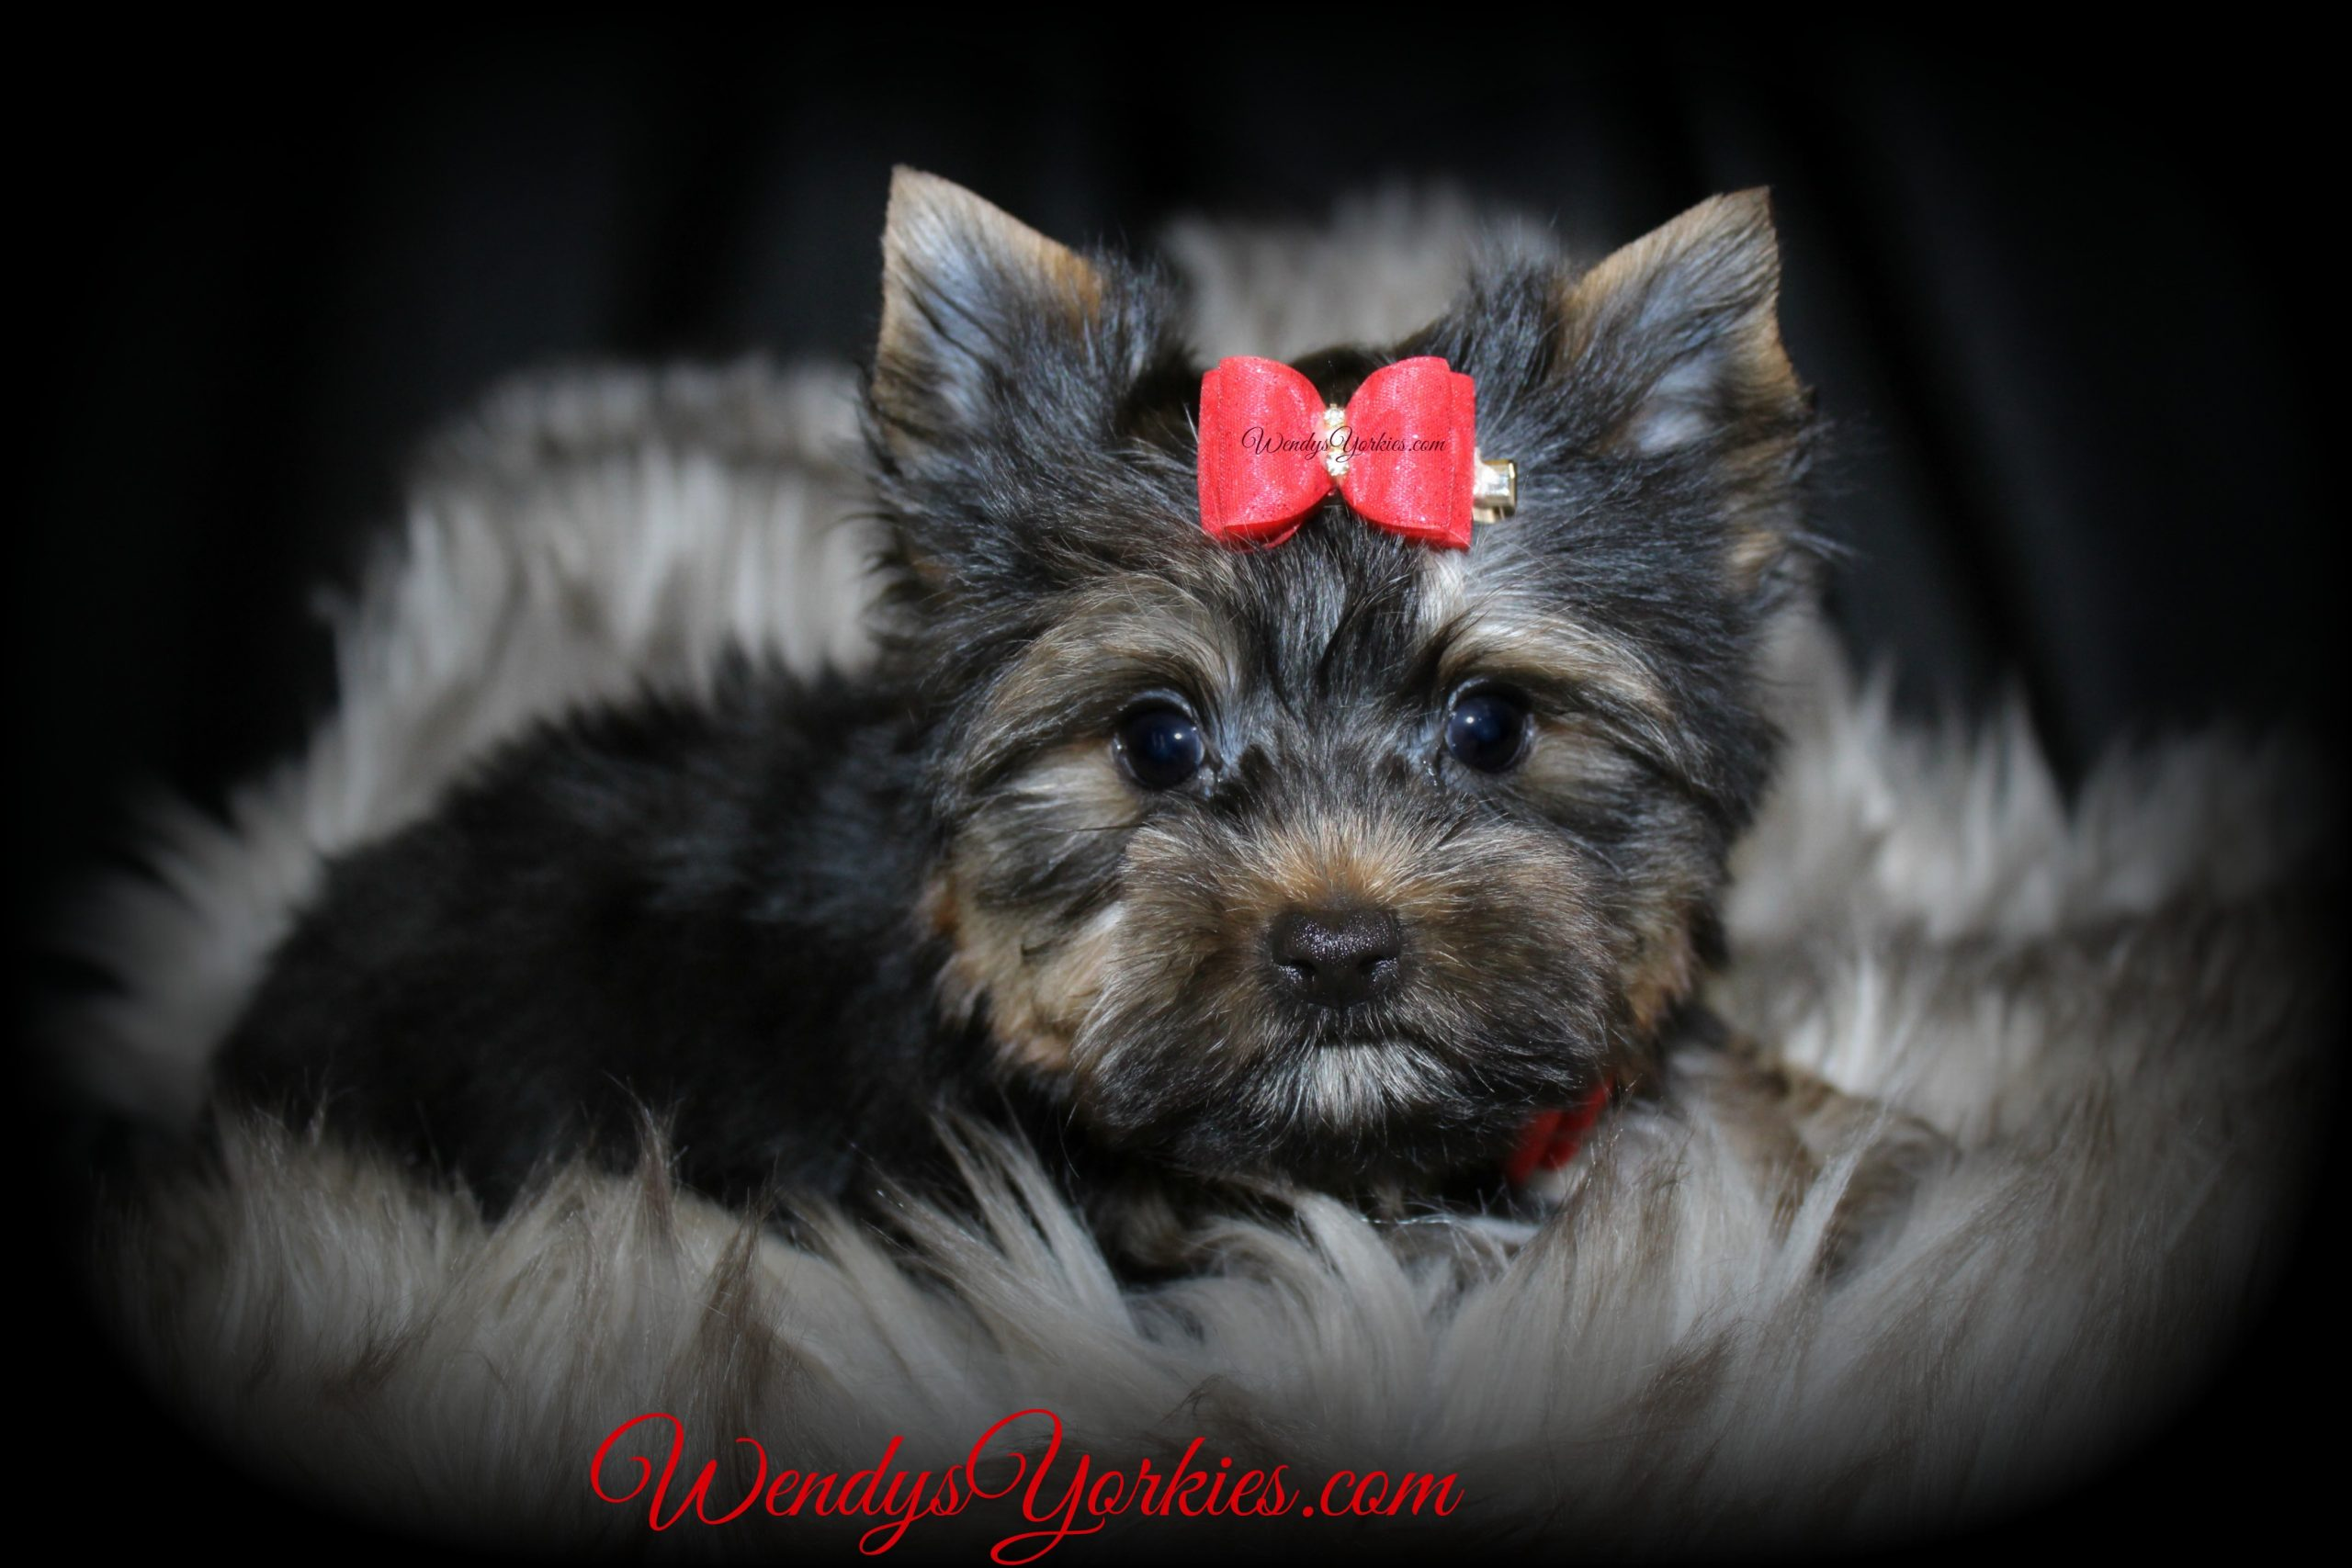 Teacup Male Yorkie puppy for sale, m3,WendysYorkies.com